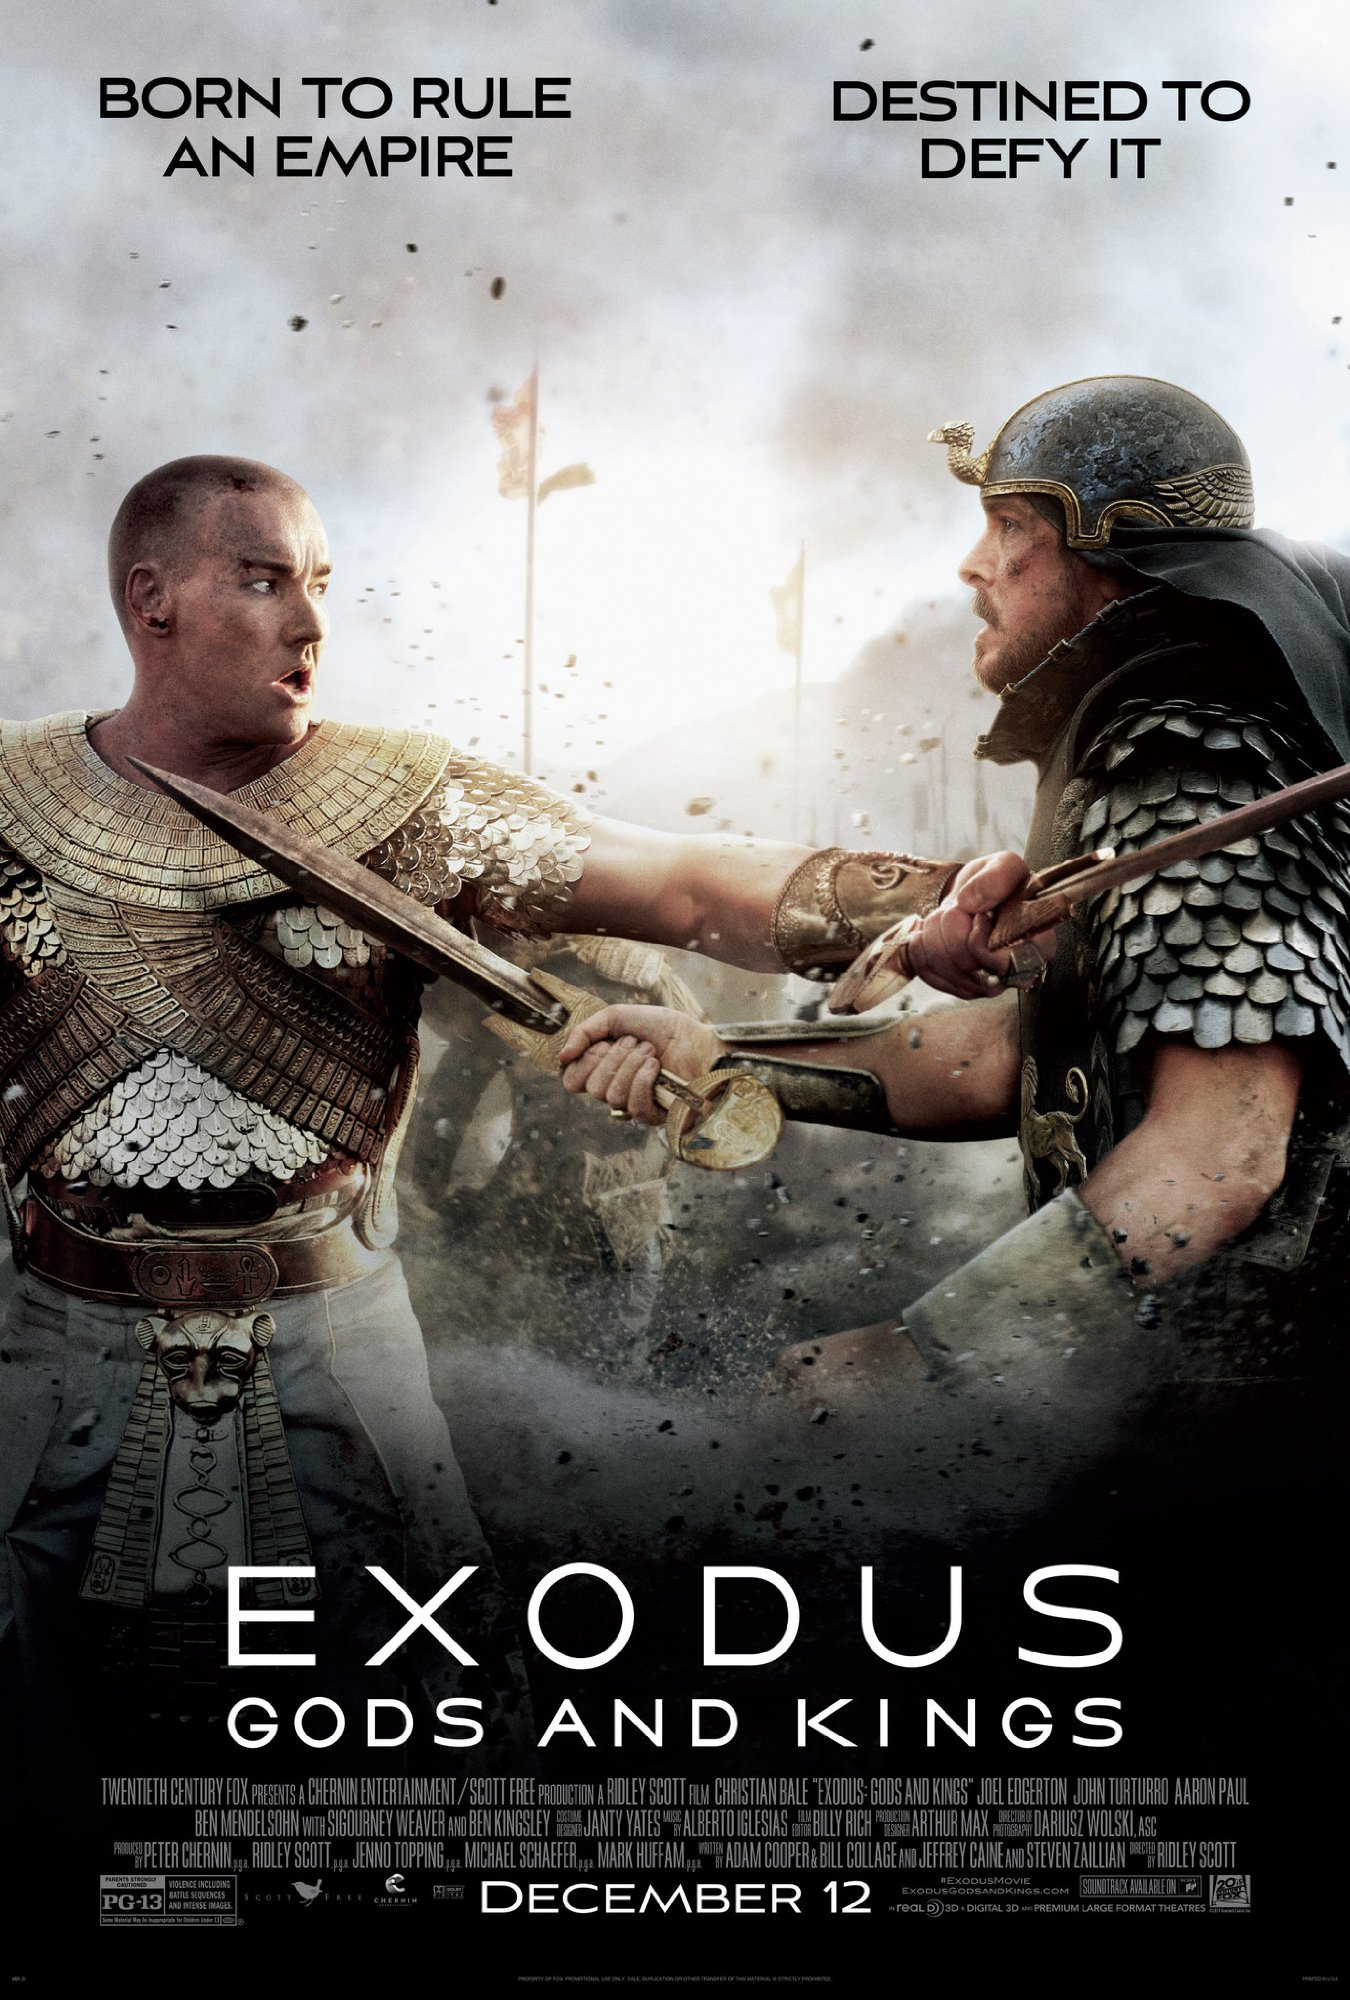 Exodus Gods and Kings-Official PROMO-27OUTUBRO2014-03